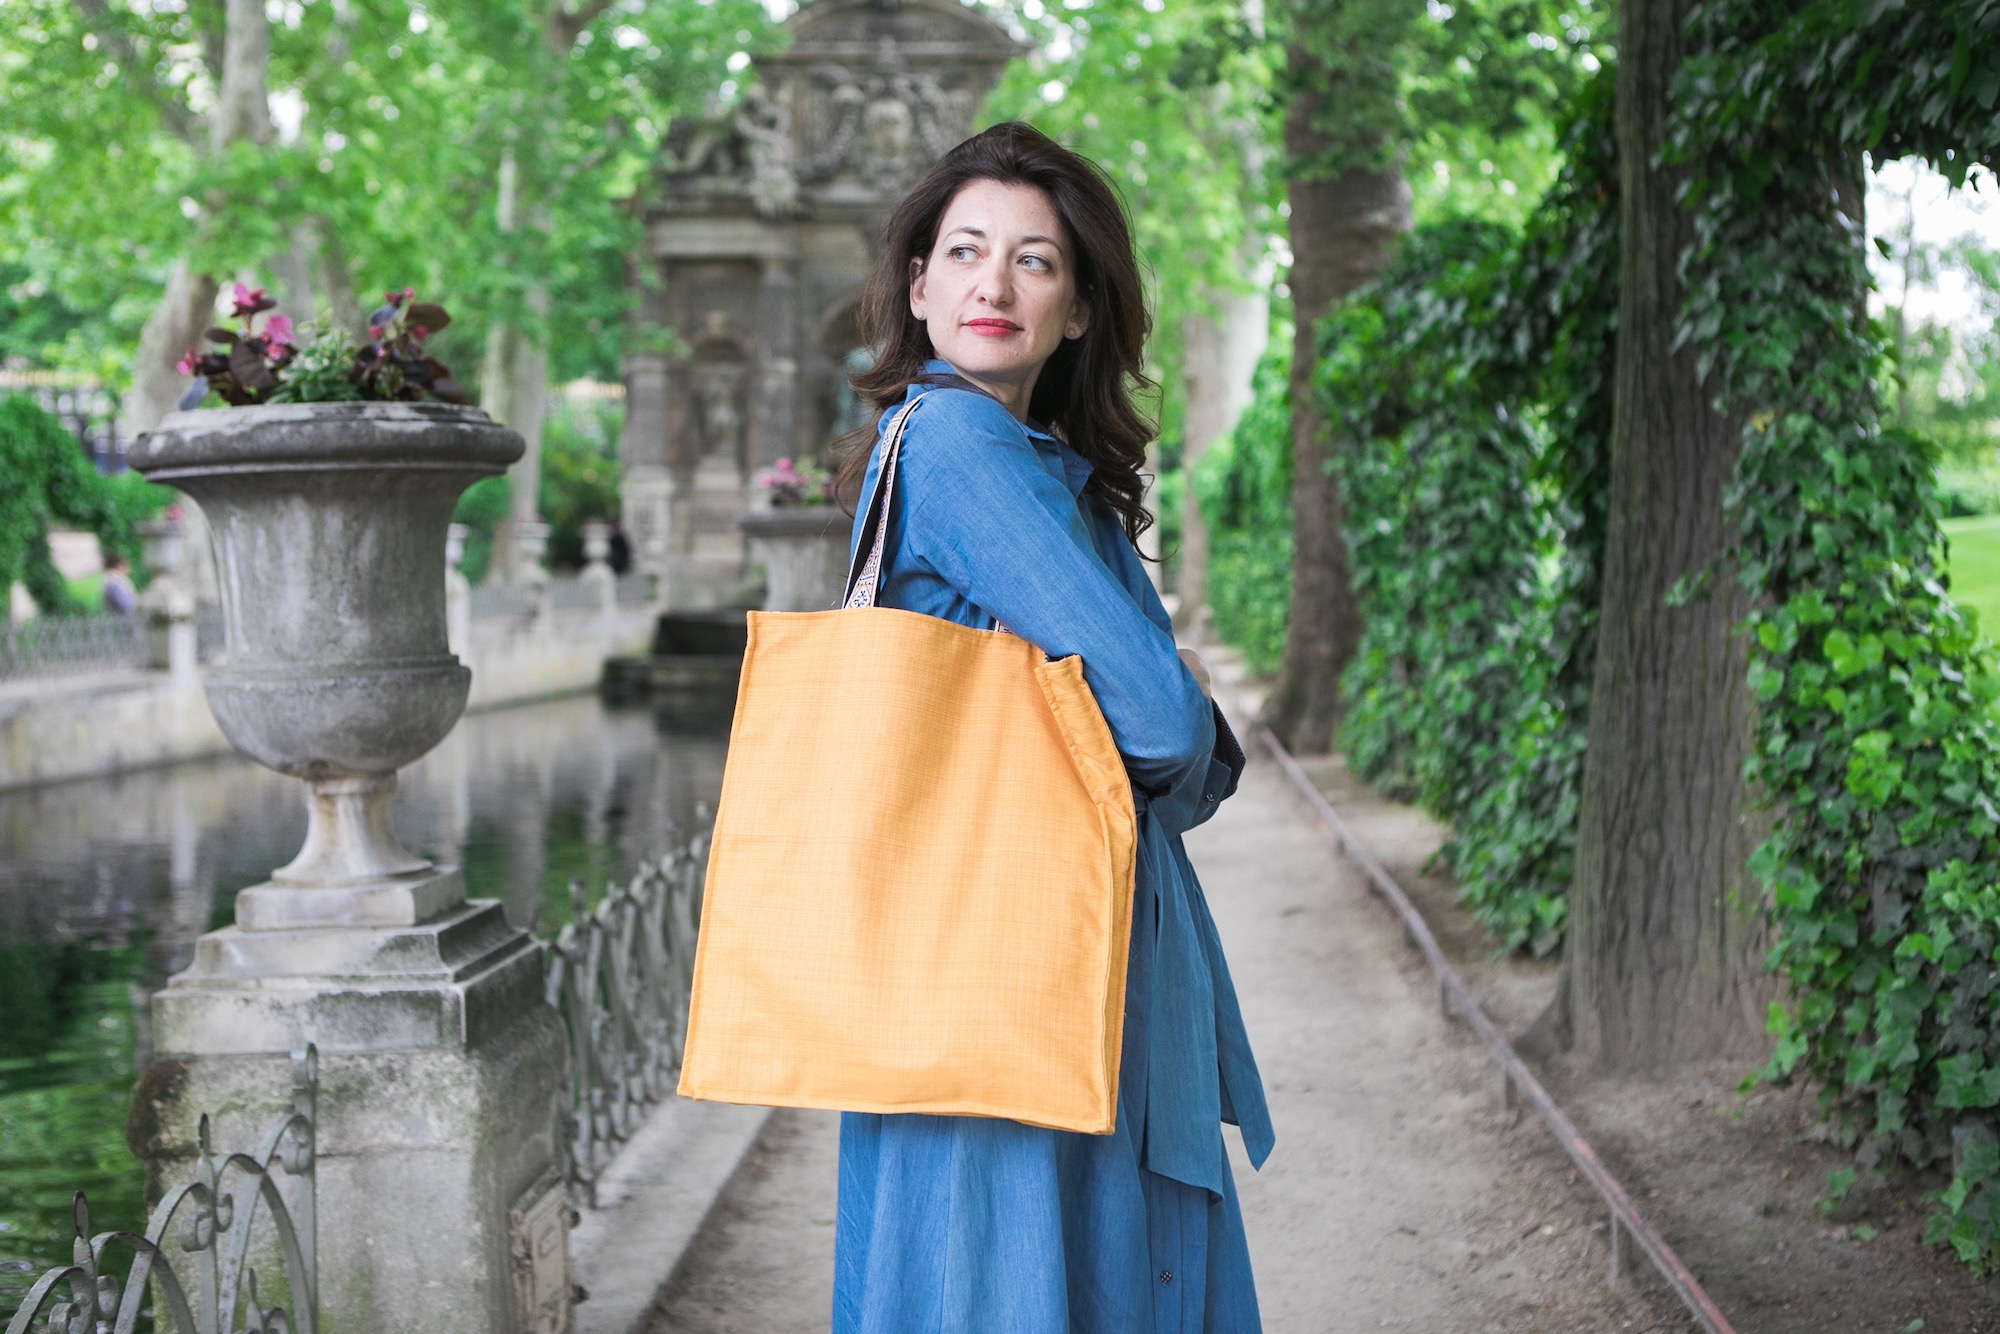 Kasia Dietz, founder of her eponymous handbag line, enjoys a lush spring day at the Medici Fountain in the Jardin du Luxembourg, one of her creamy orange tote bags slung over her shoulder.